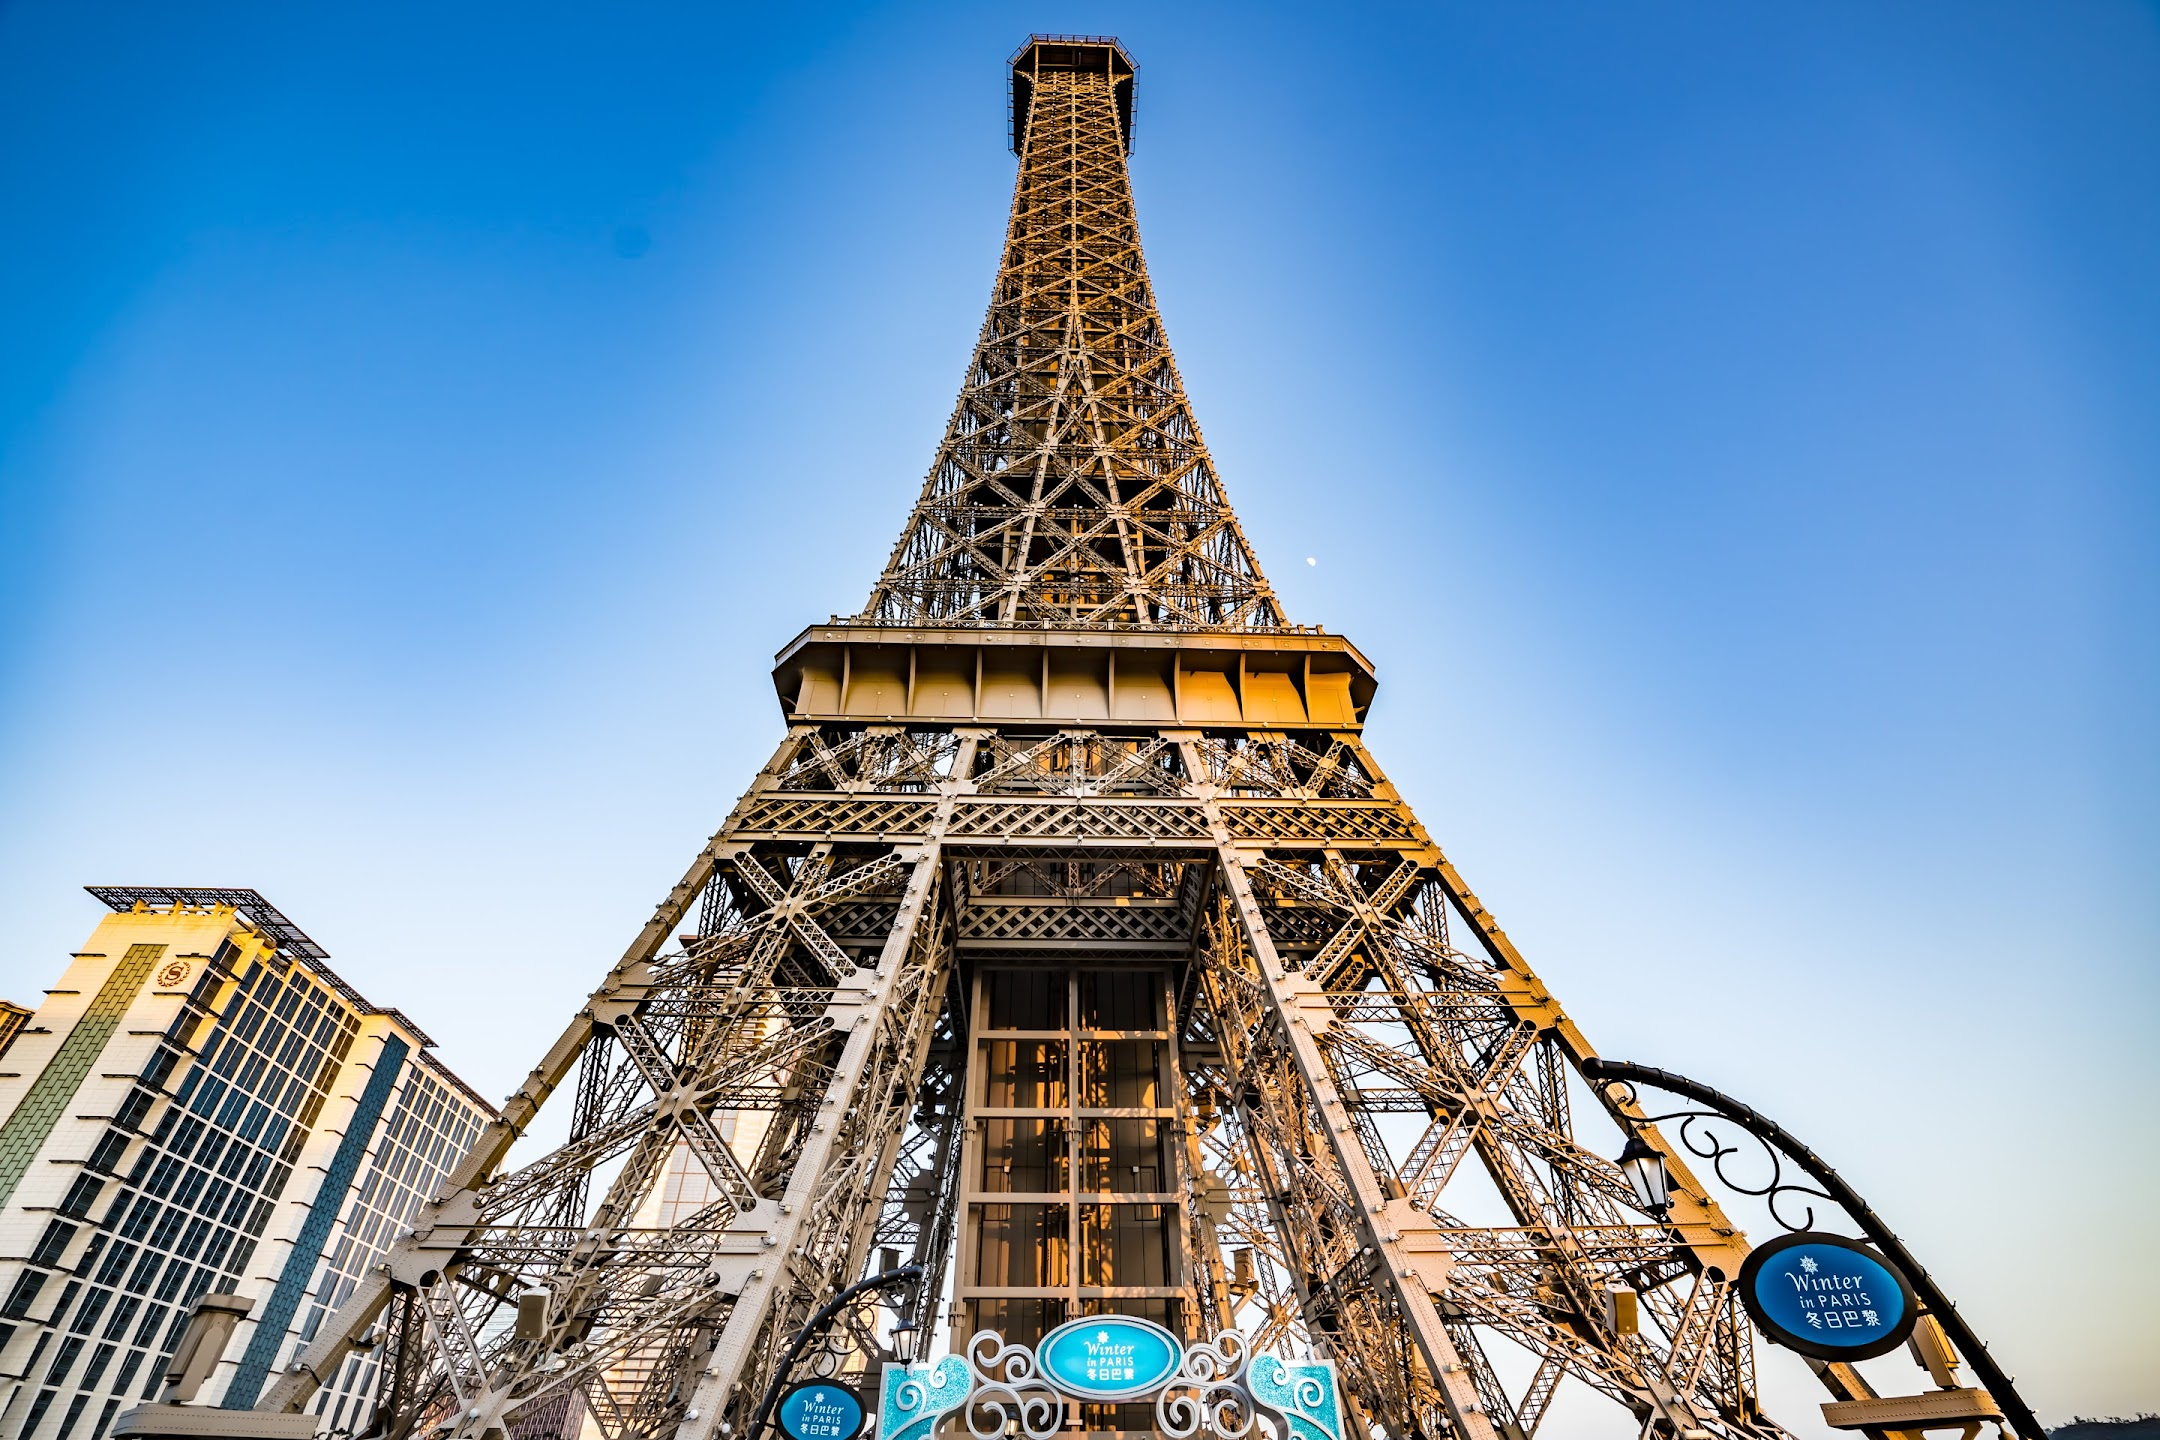 The Parisian Macao Eiffel Tower1